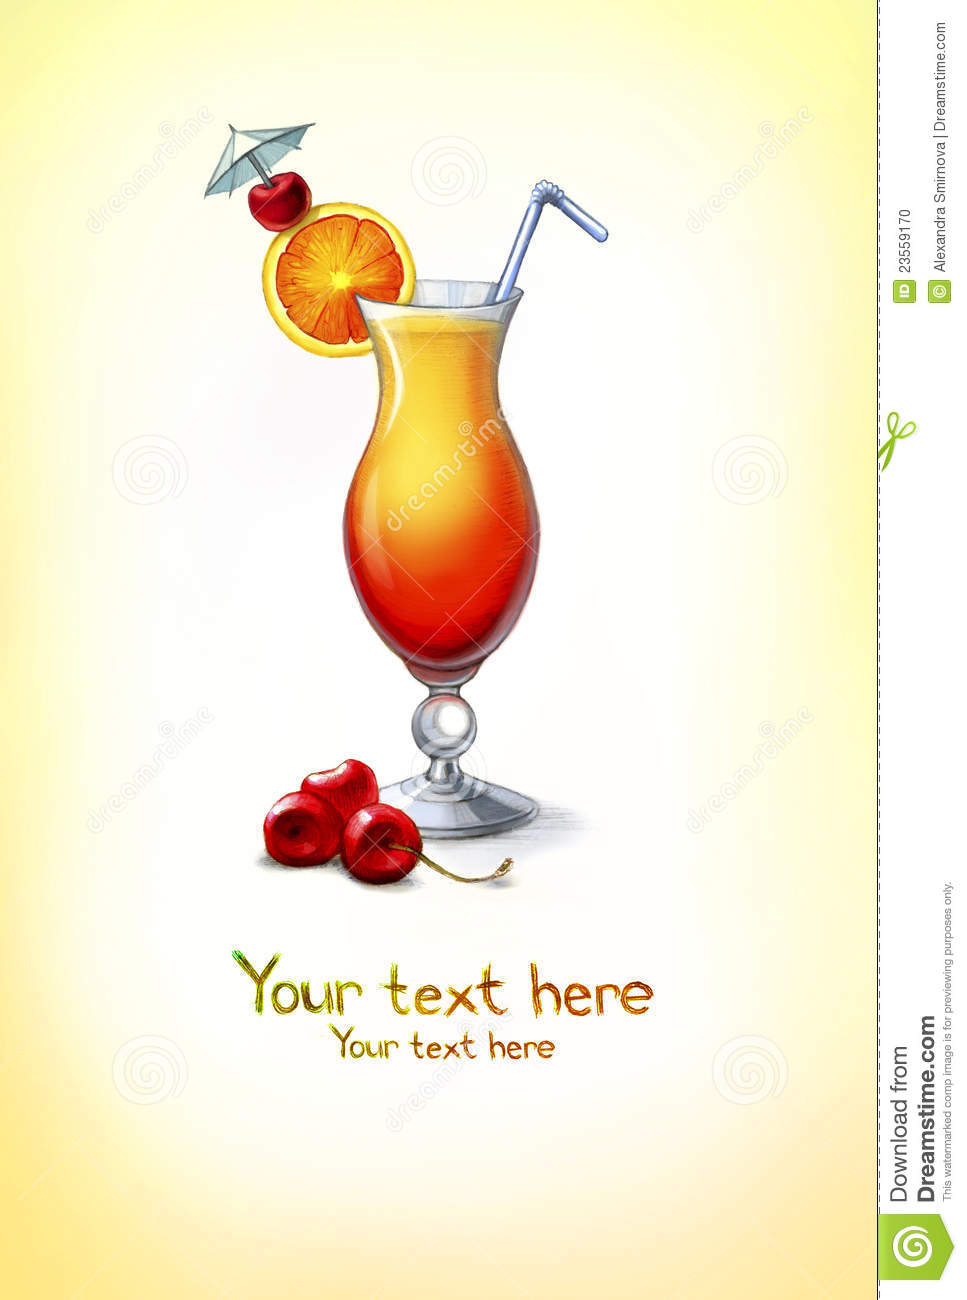 Illustration Of Cocktail Stock Photo - Image: 23559170